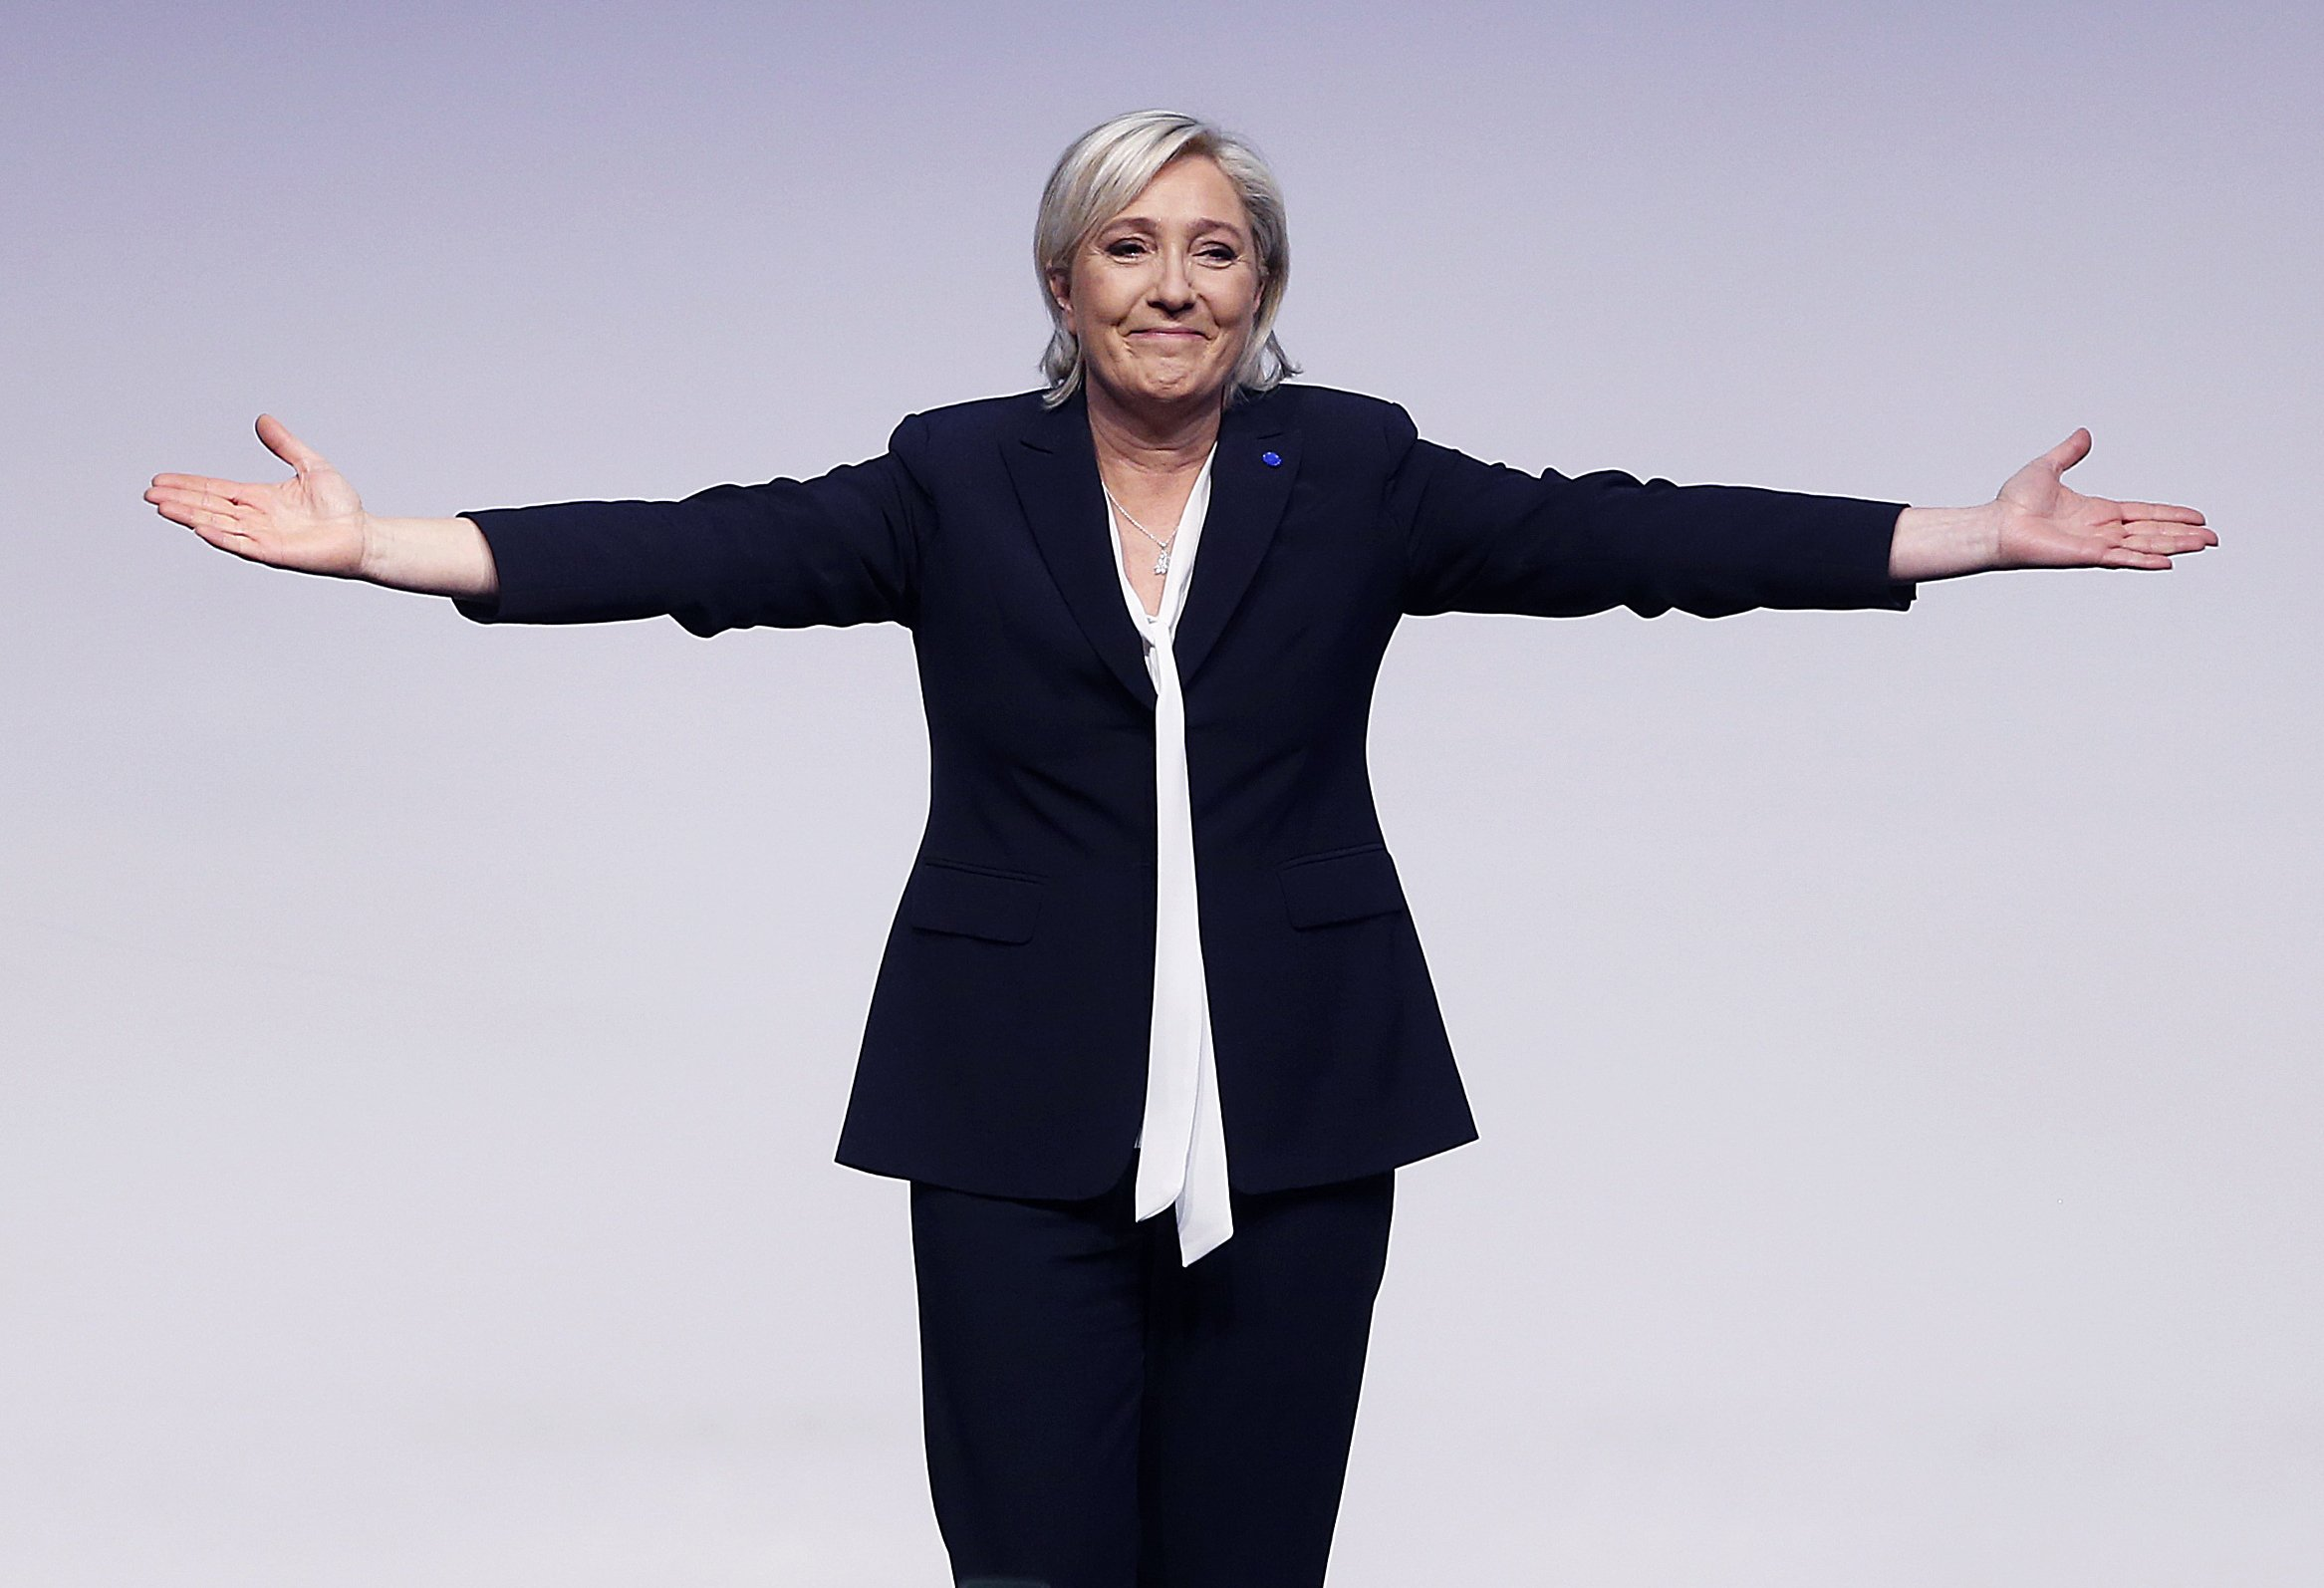 The Latest: Le Pen vows to pull France out of EU, NATO